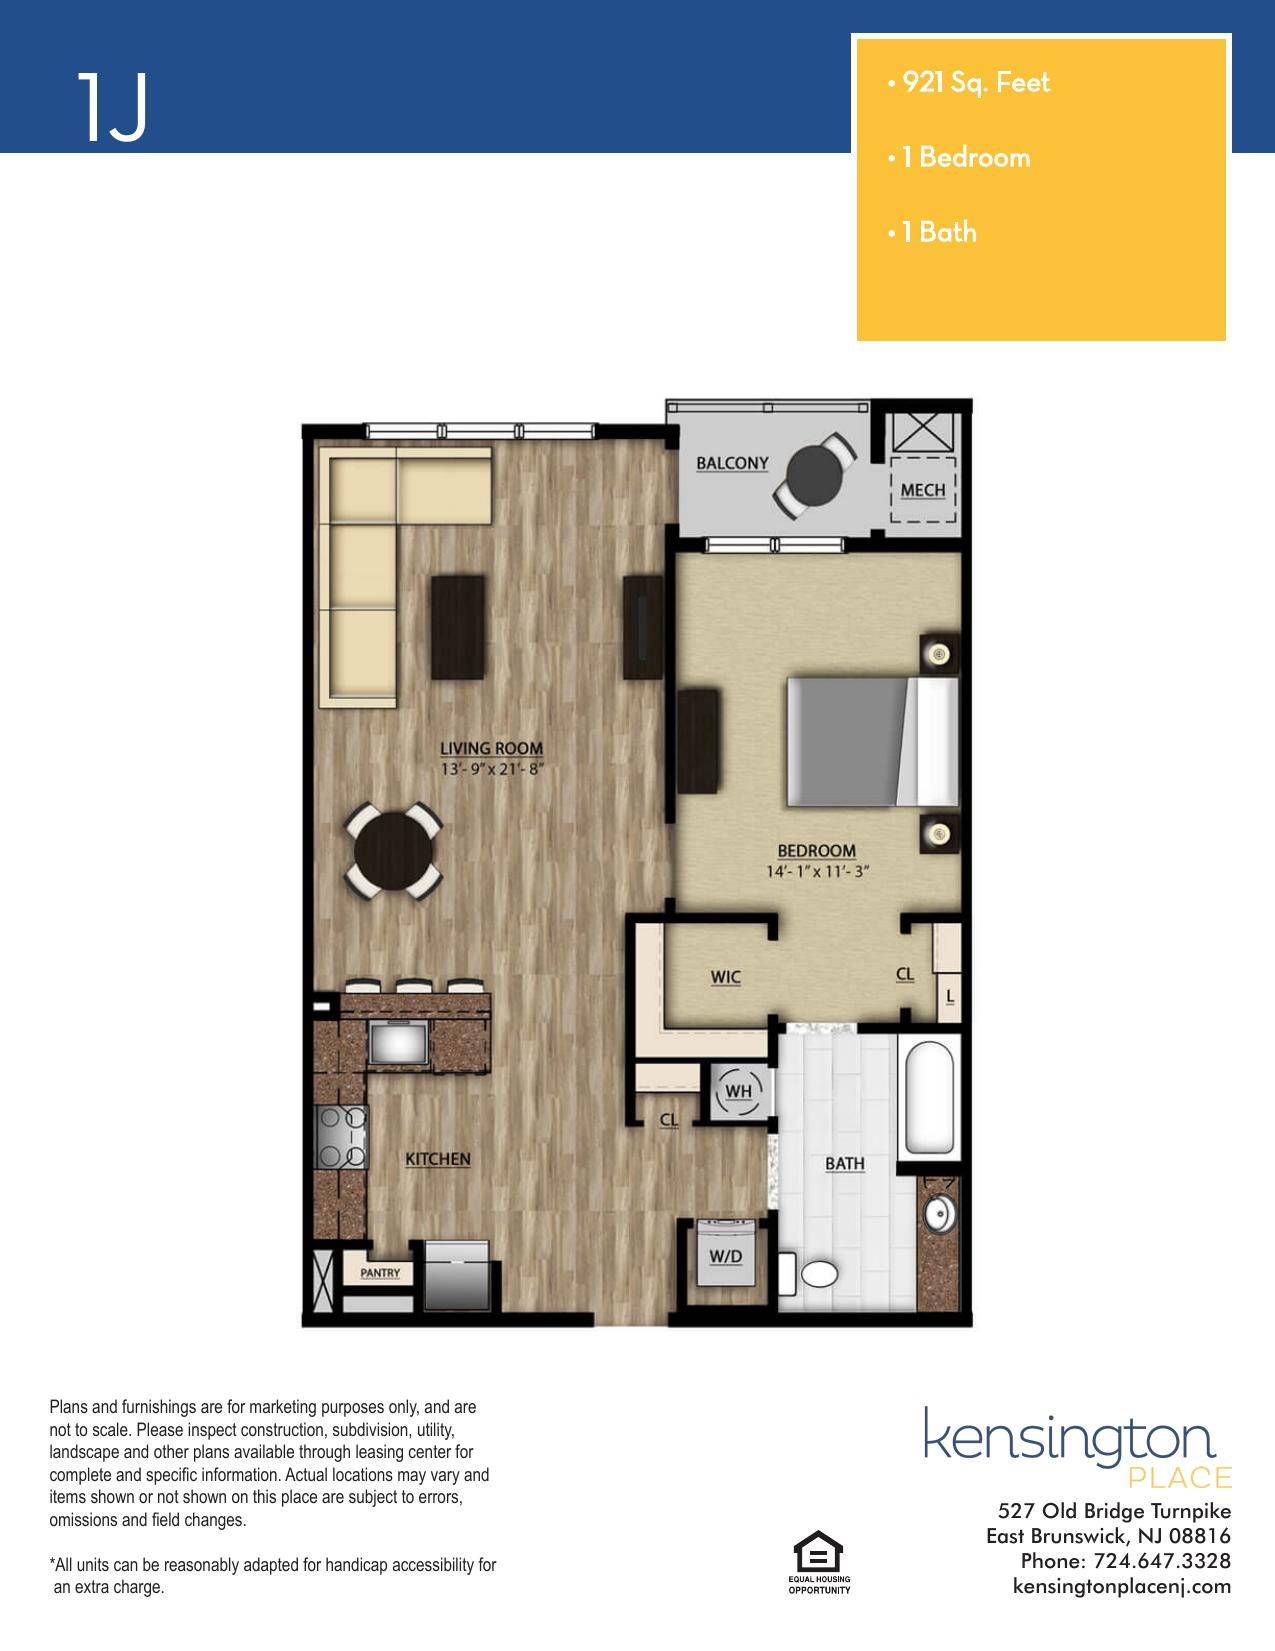 Kensington Place Apartment Floor Plan 1J